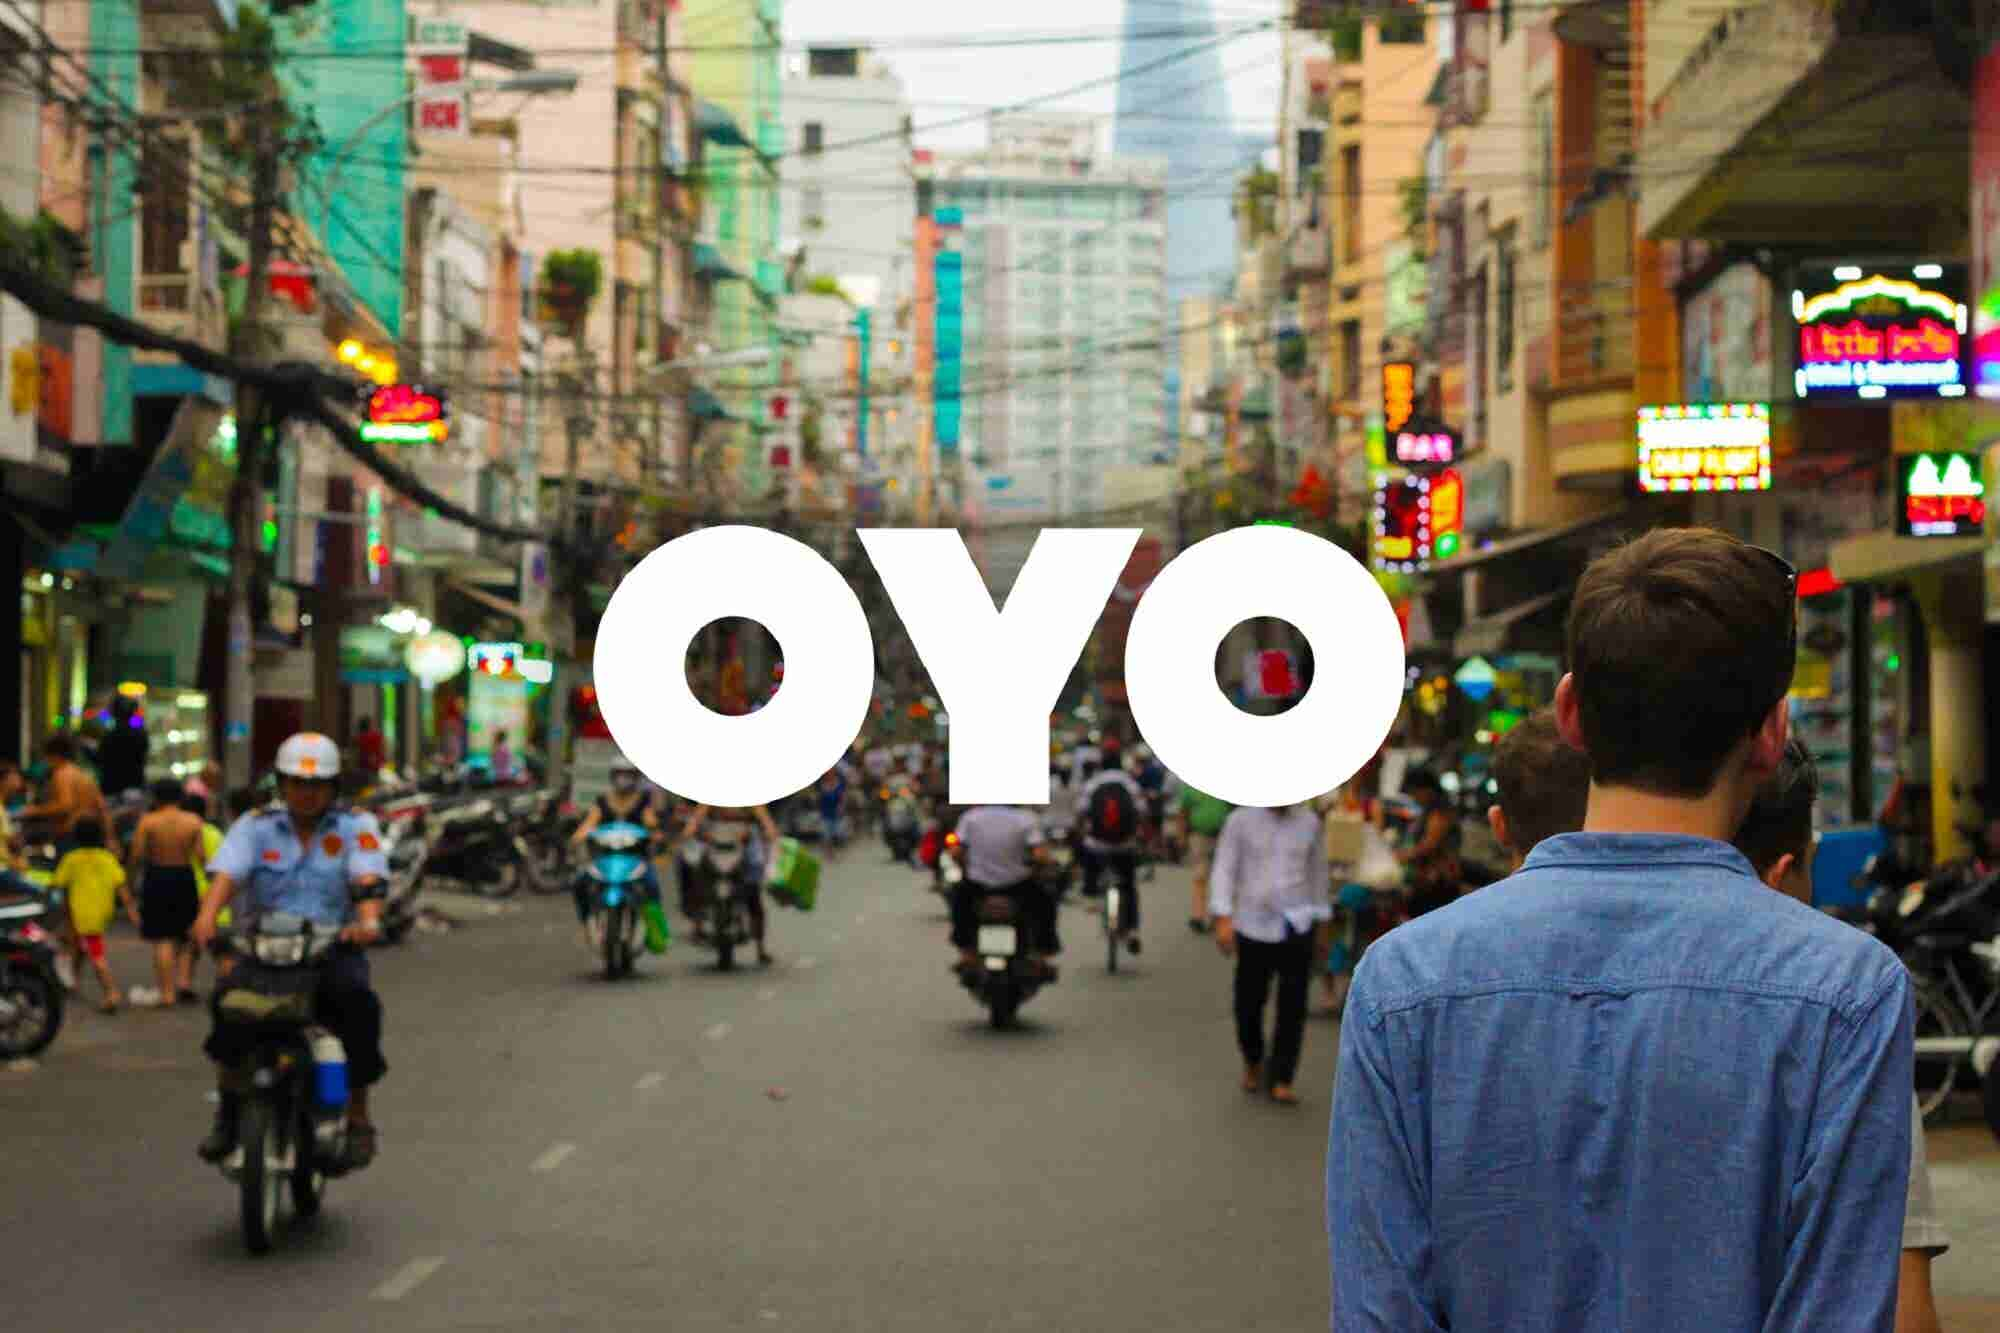 OYO Rooms' Unstoppable Growth in China